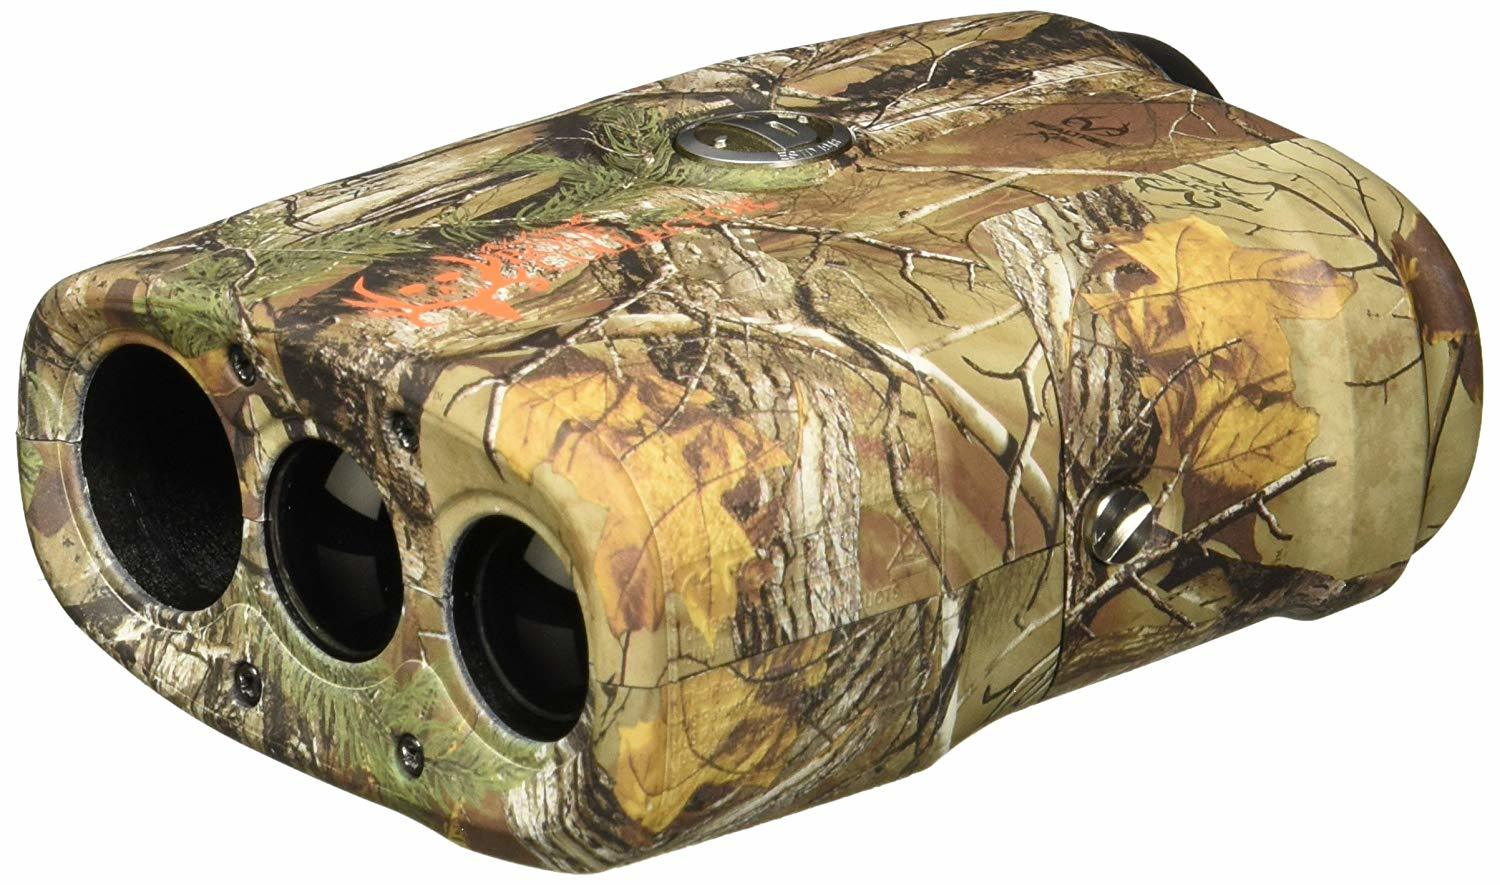 Bushnell 202208 Bone Collector Edition 4x Laser Rangefinder